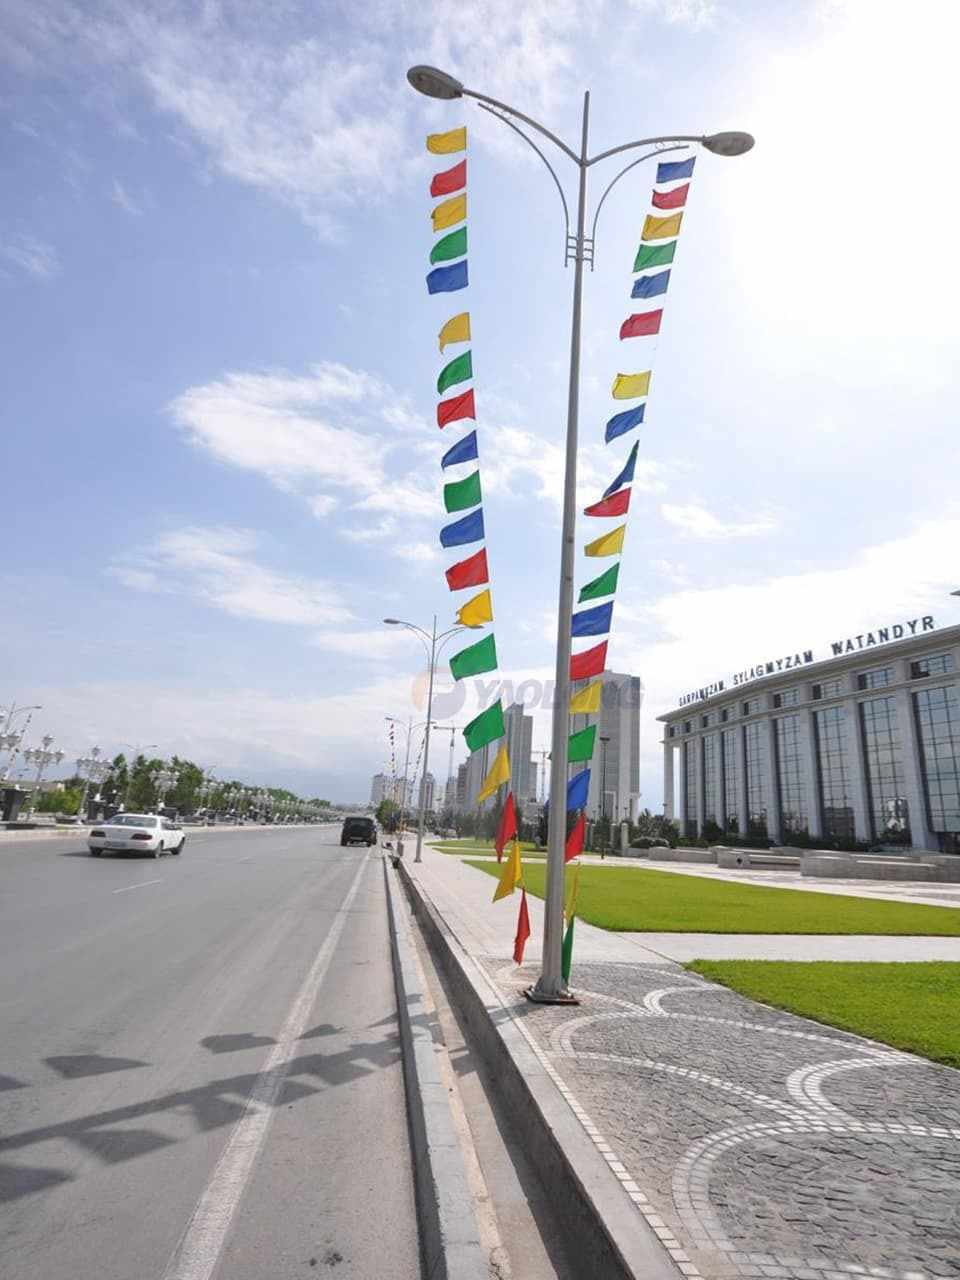 3000 nos of 12meter stainless steel light poles supplied to turkmenistan